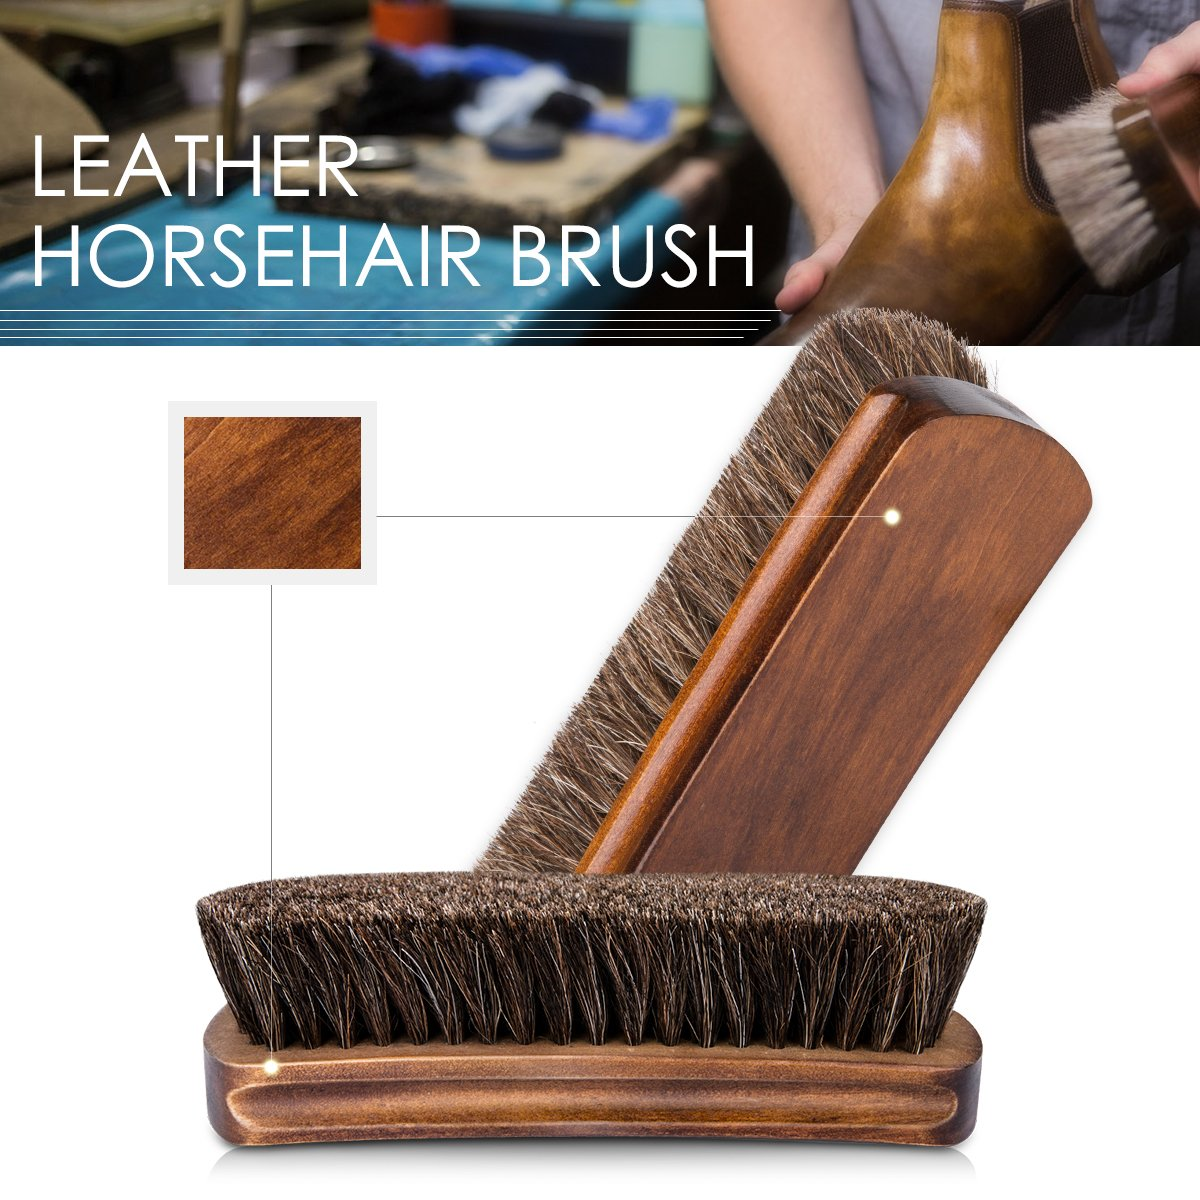 6.7'' Horsehair Shoe Brushes with Horse Hair Bristles for Boots, Shoes & Other Leather Care, 2 Pack (Brown) by Foloda (Image #3)